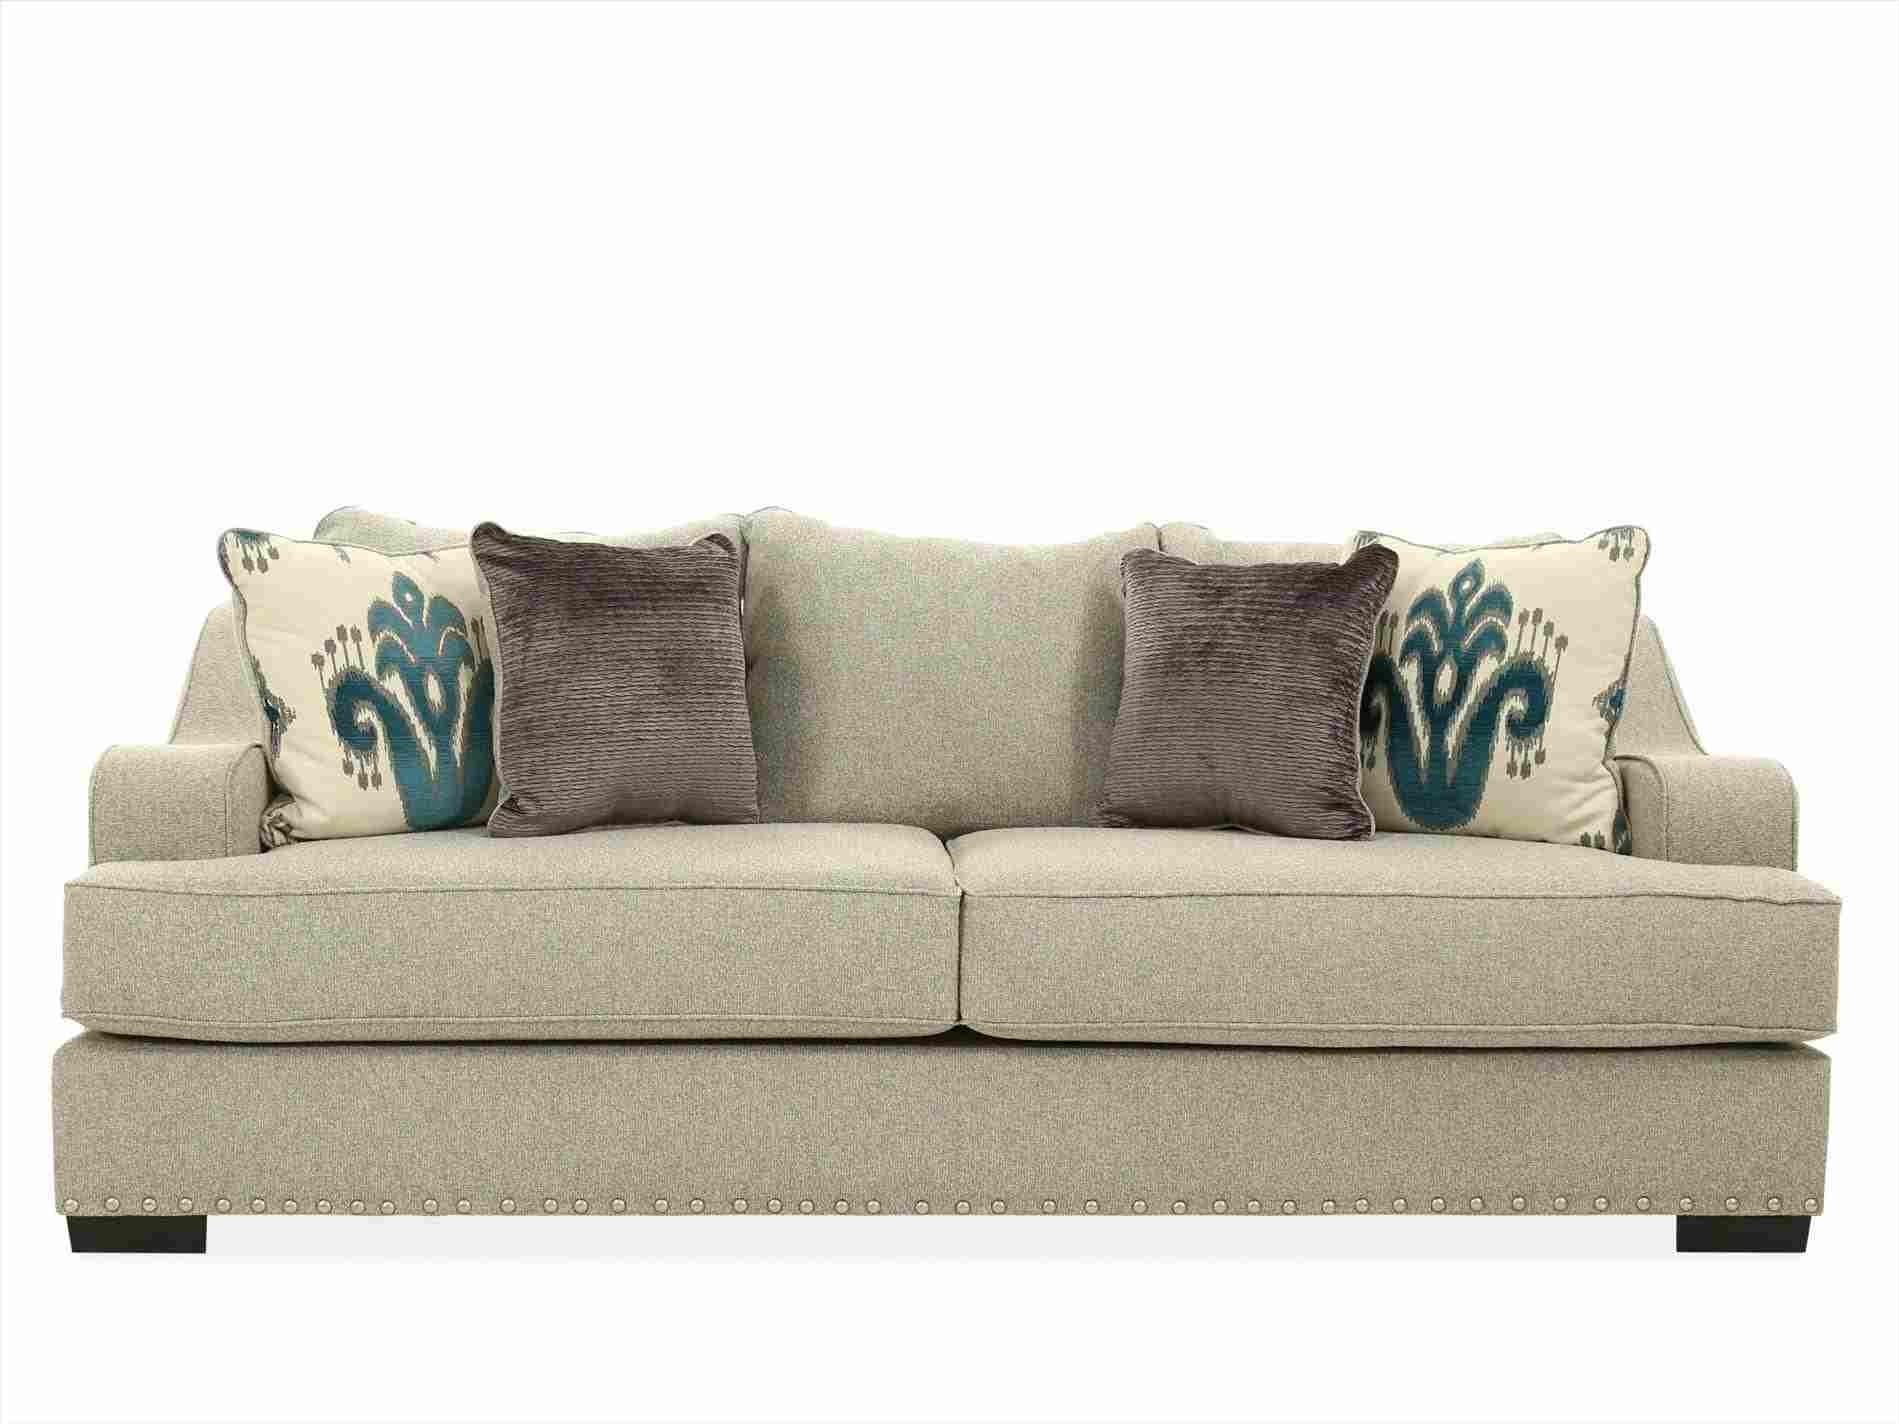 Sectional Sofa Connector Instructions | Cincinnatitaxi For Jobs Oat 2 Piece Sectionals With Left Facing Chaise (Image 21 of 25)